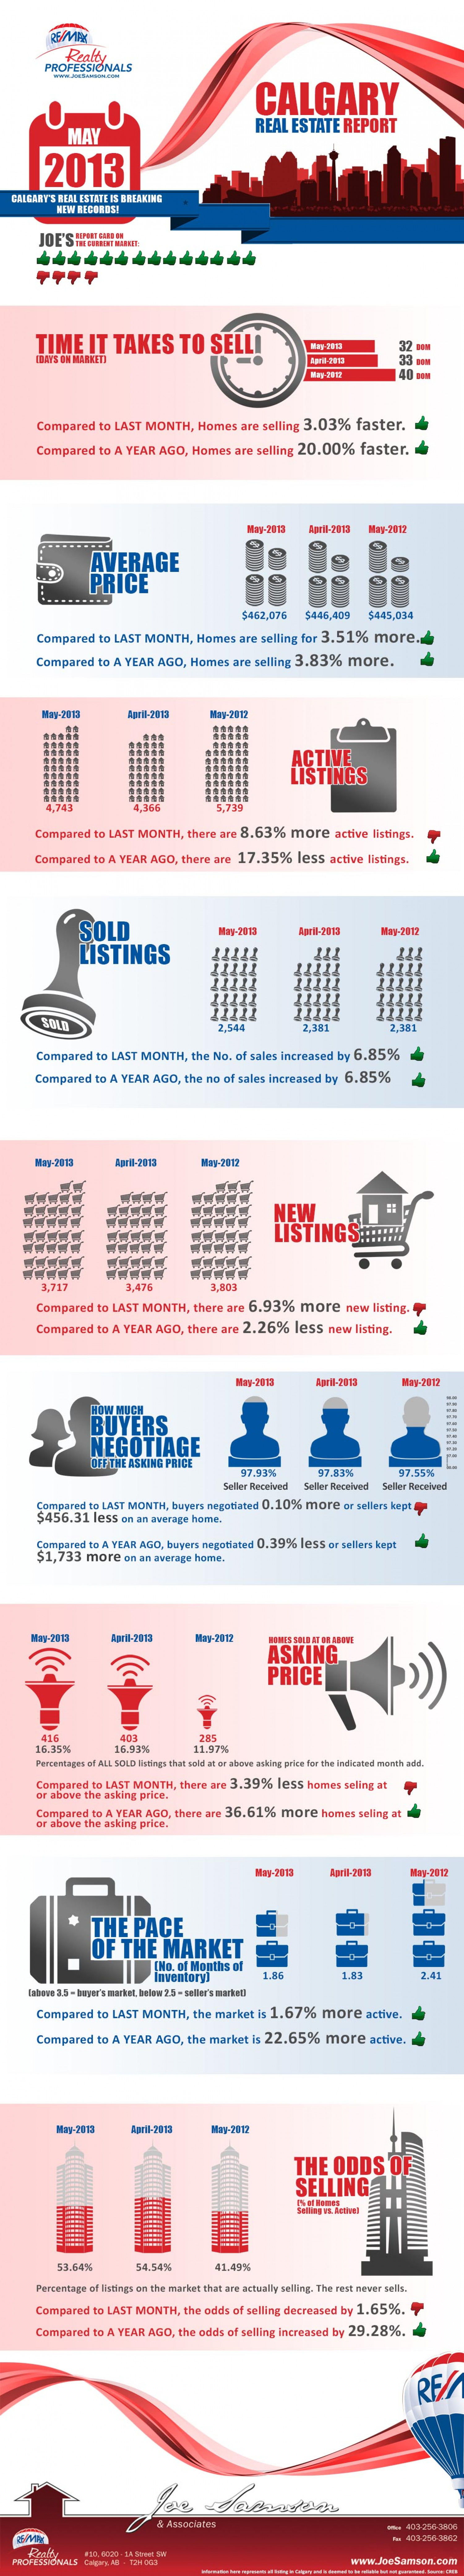 Real Estate Market in 2013 Infographic